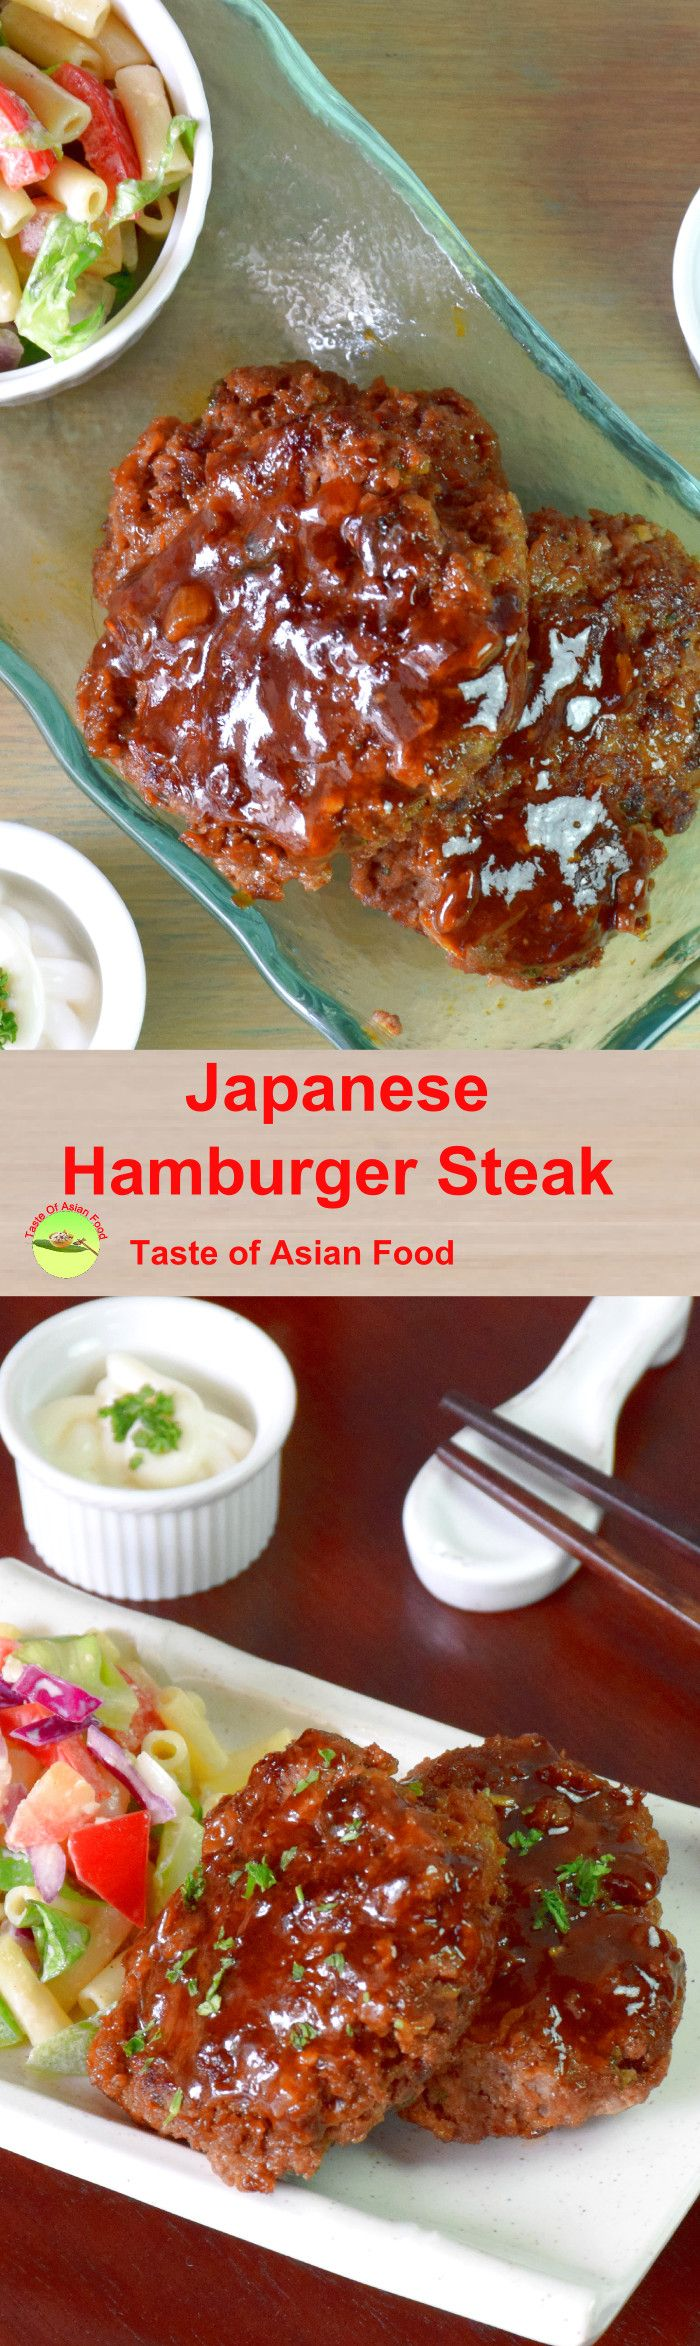 [New Recipe] Japanese Hamburger steak (Hambagu)  If you are bored with the conventional hamburger or steak, try Hambagu, the Japanese style Hamburger steak.  Because although Hambagu is the transliteration of the word Hamburger, it resembles Salisbury steak more than a burger. It presumably evolves from Salisbury steak, which originates from the US with western seasoning.  Recipe and video here: http://tasteasianfood.com/hamburger-steak/